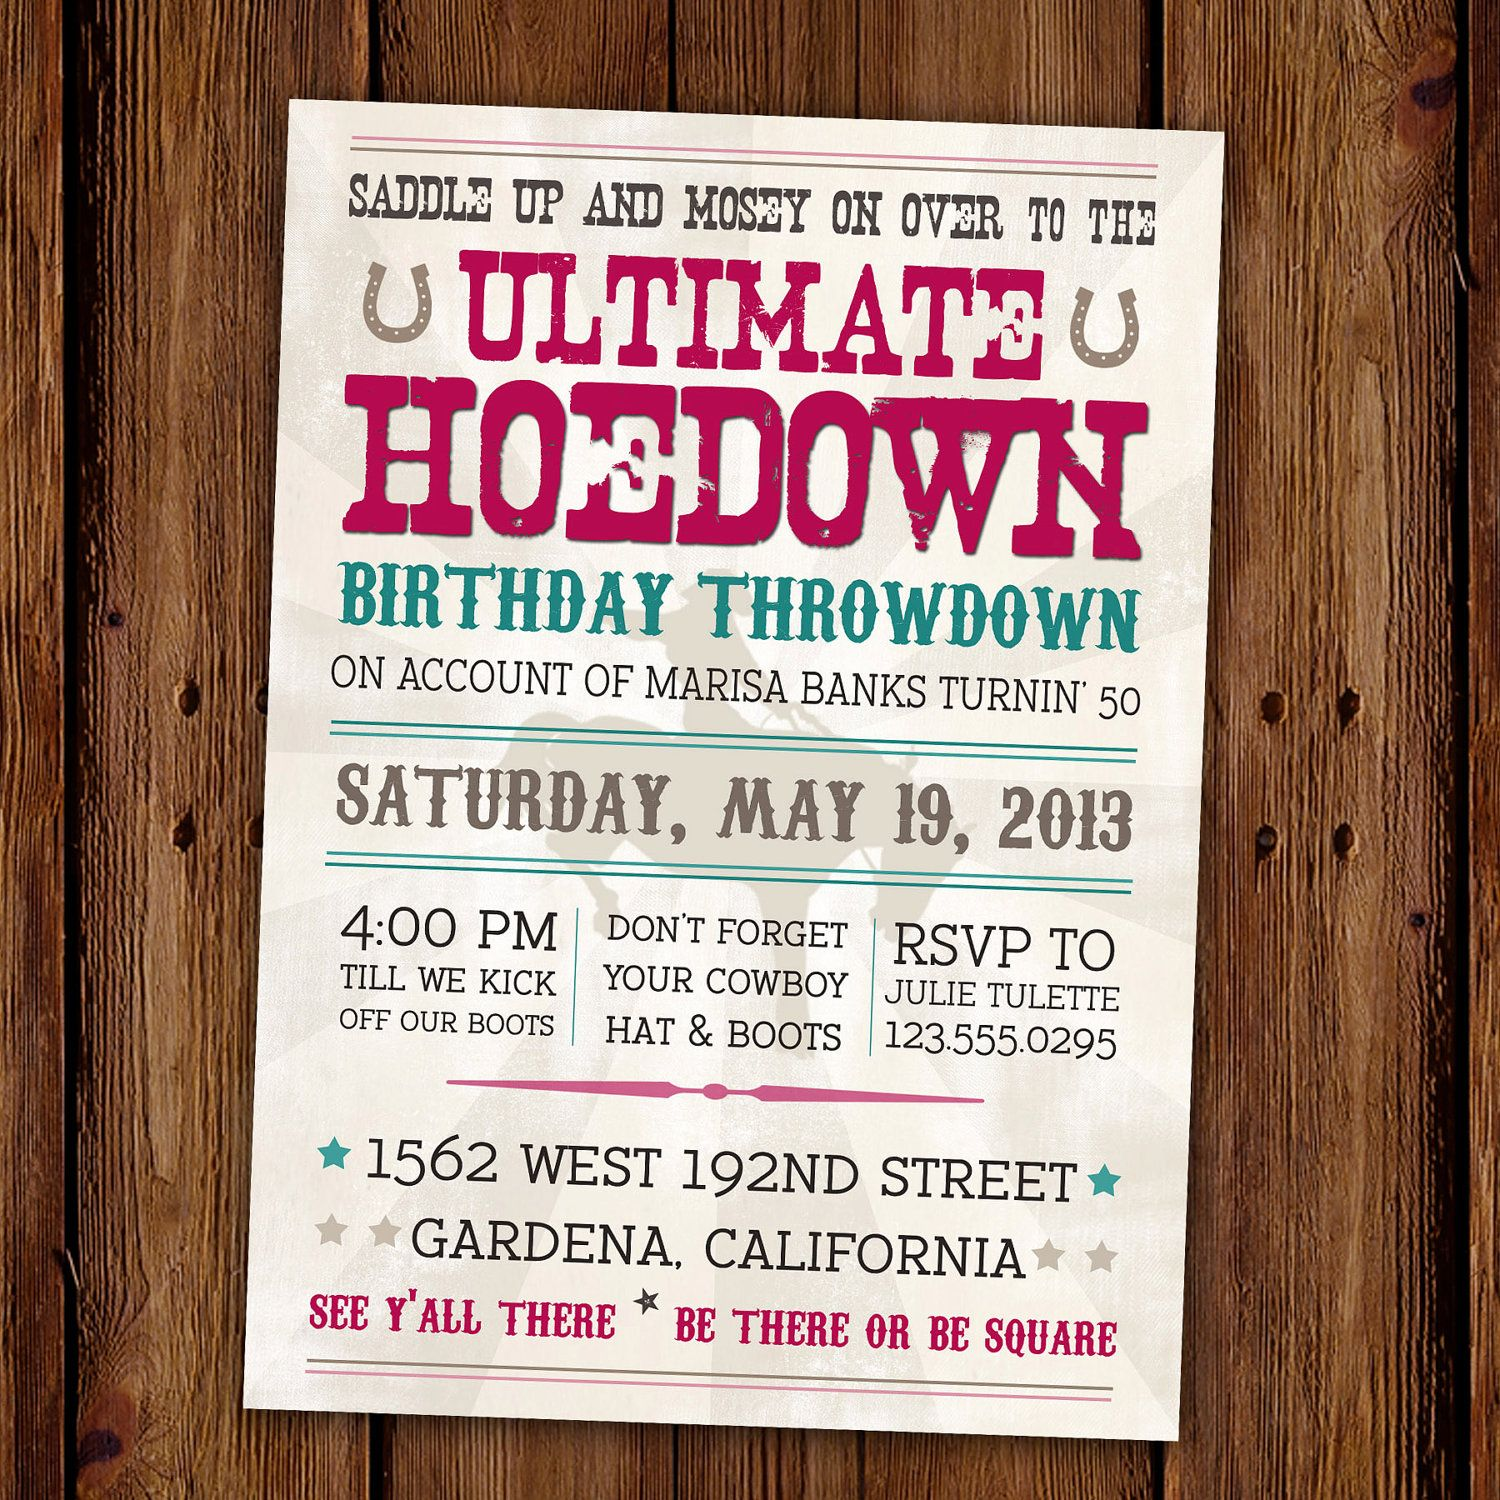 Vintage Hoedown Invitation Ultimate Hoedown Throwdown Country